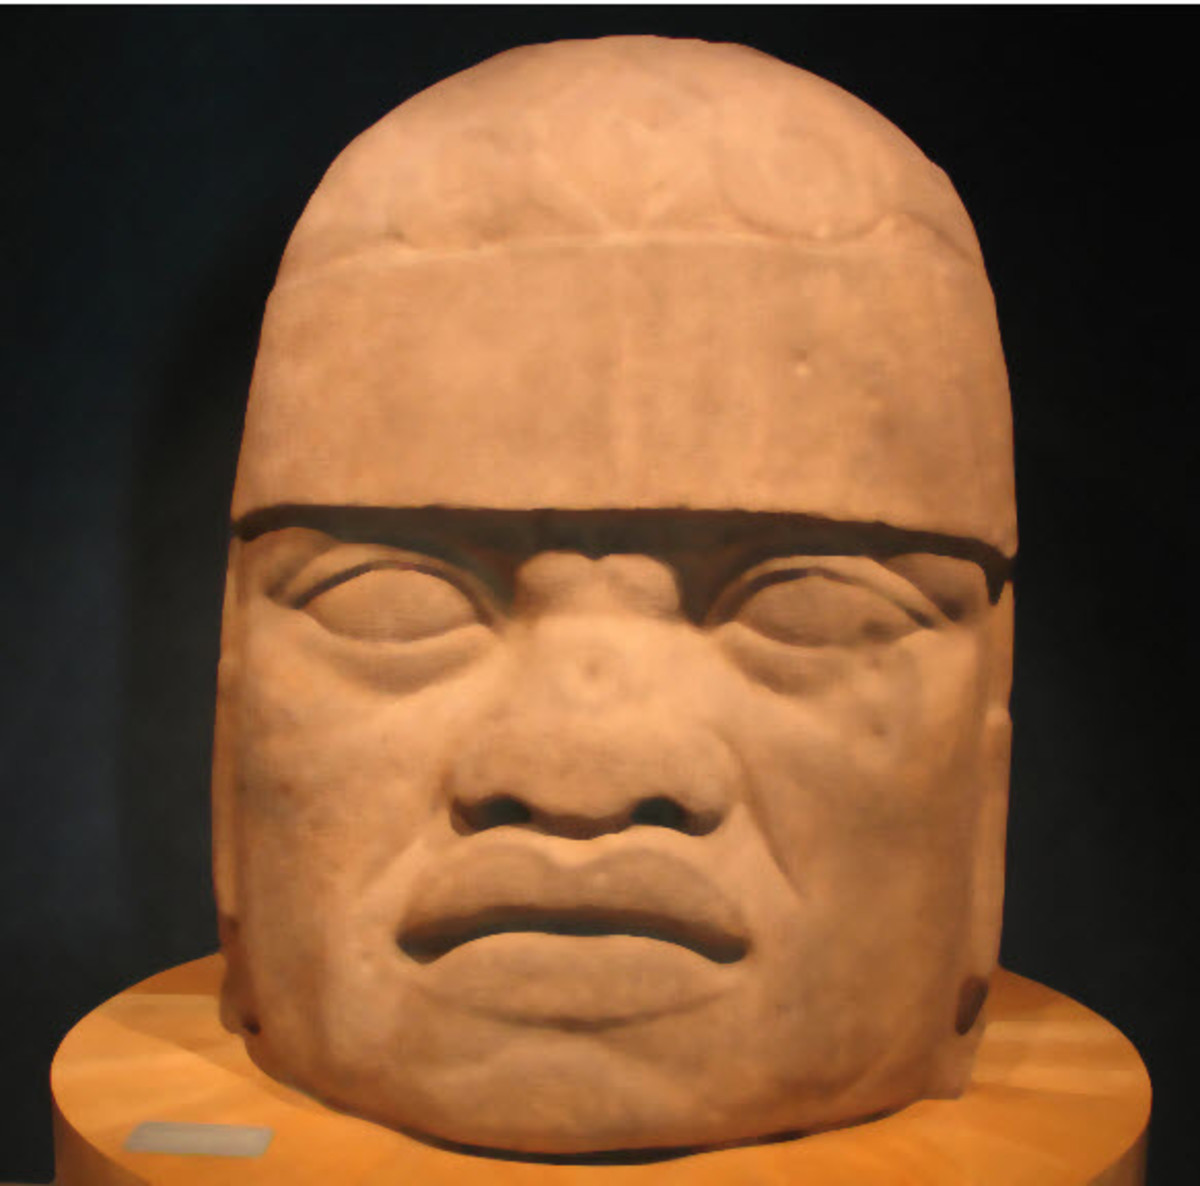 Does This Pre-Columbian Statue Depict a Man of African Origin?